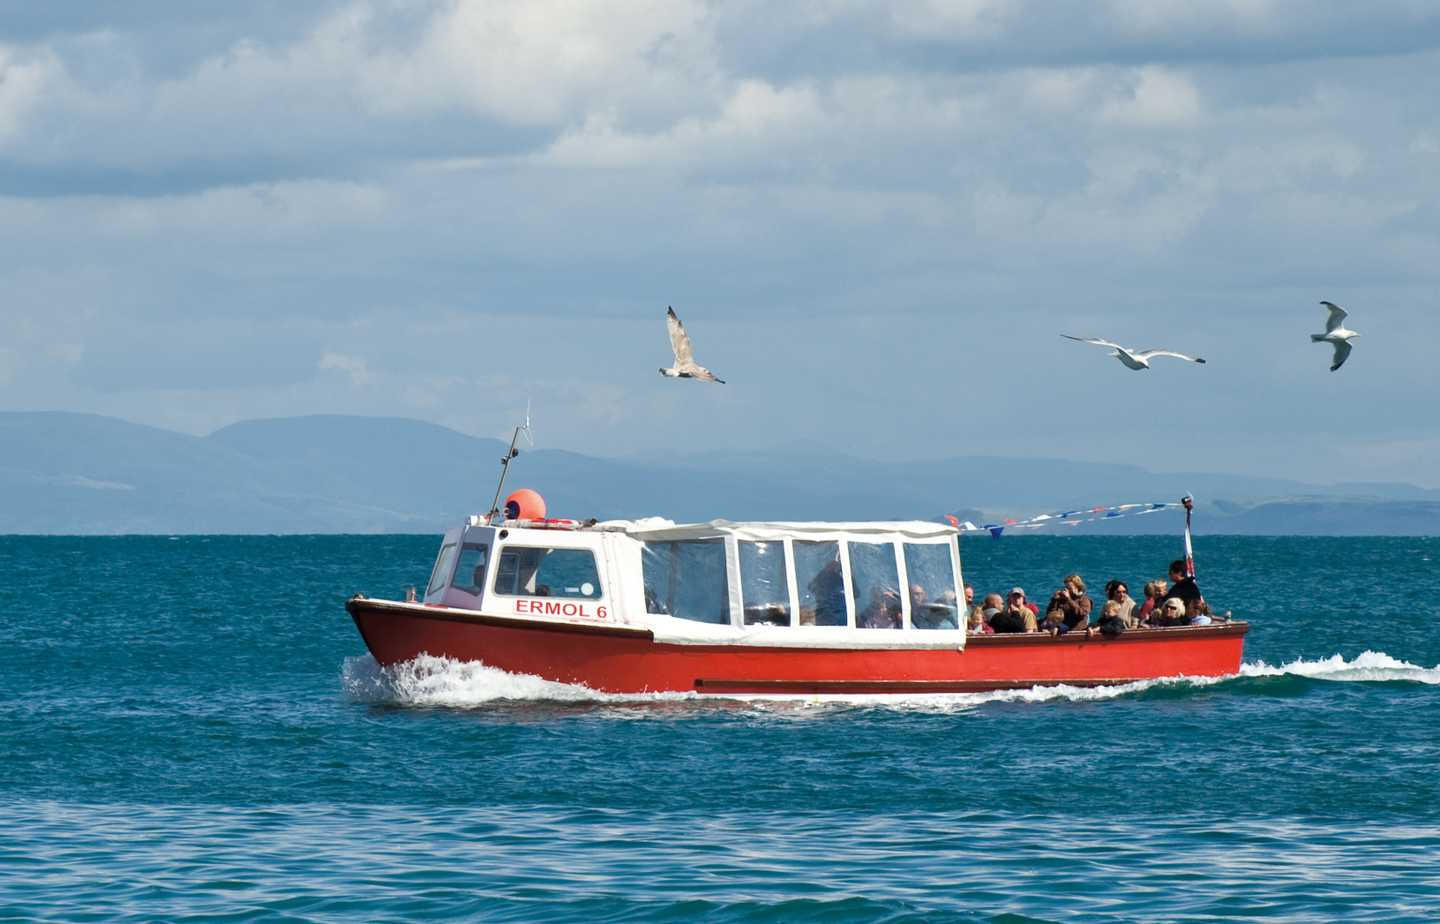 Red and white boat at sea with birds overhead